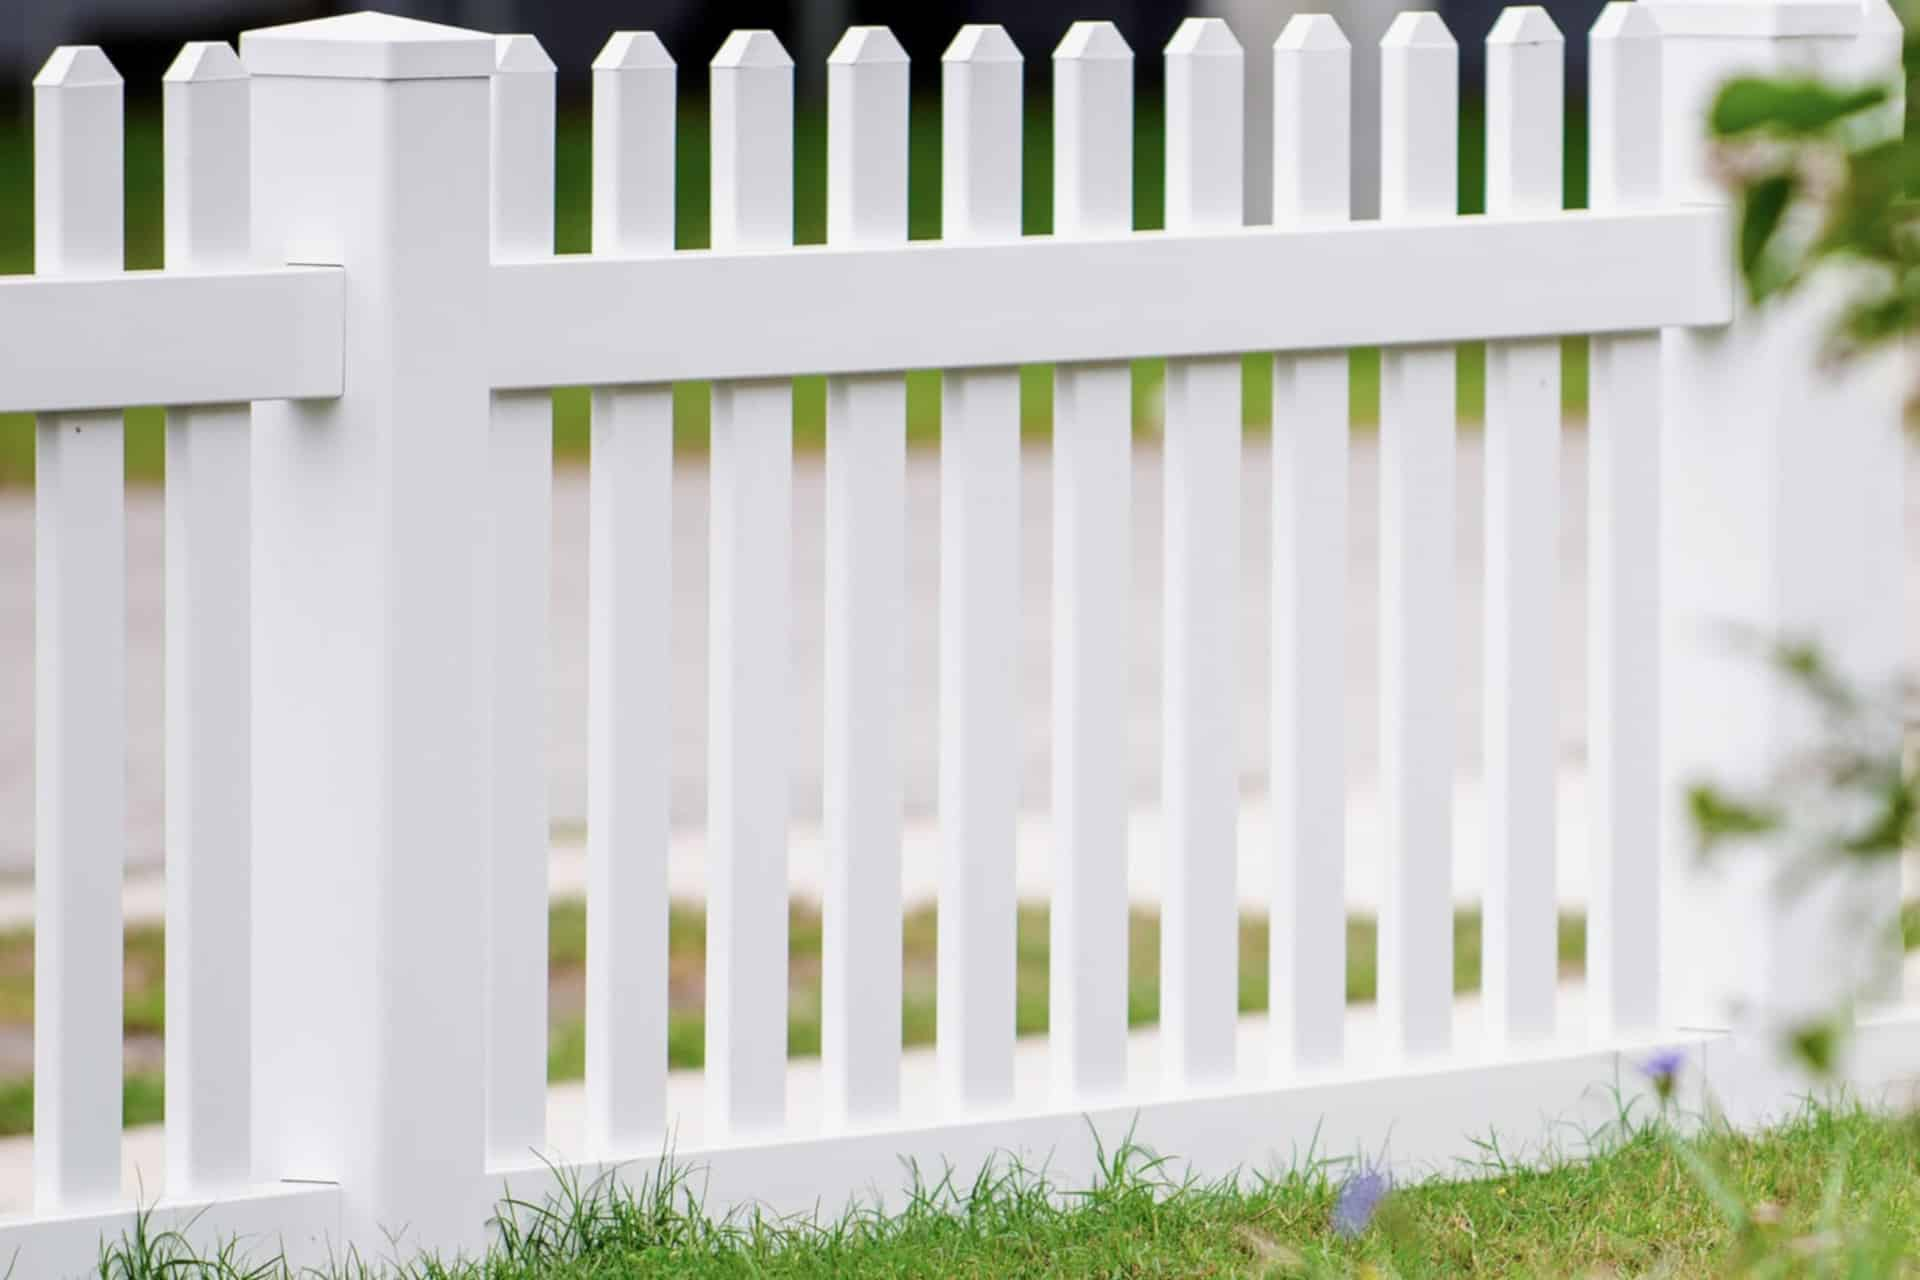 https://www.superiorfenceandrail.com/wp-content/uploads/2021/03/kentwood-fence-company-1920x1280-1.jpg